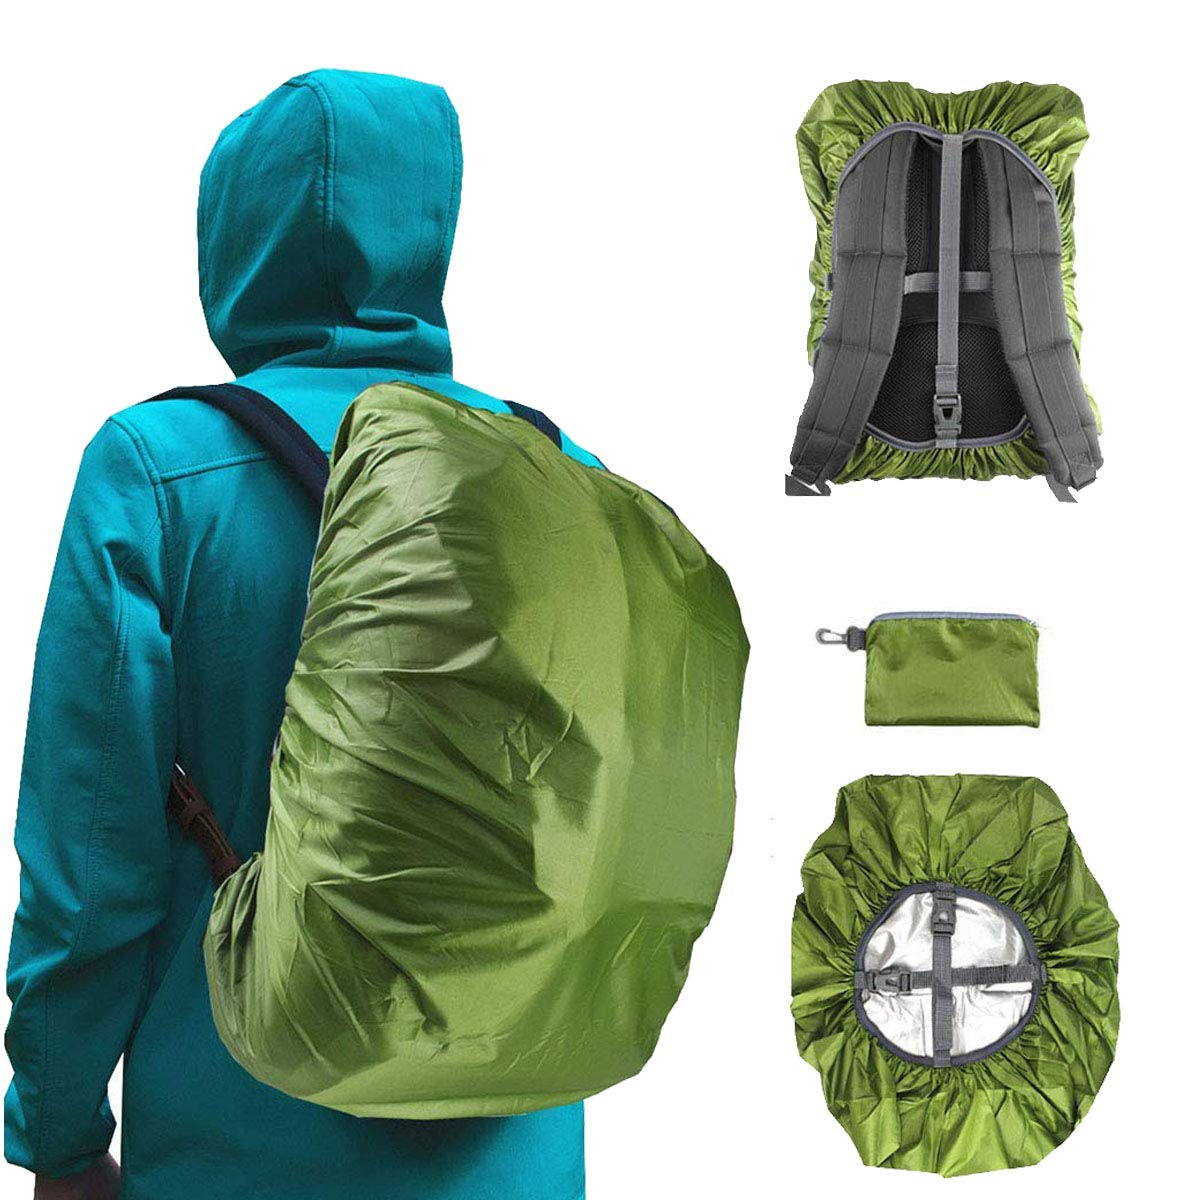 Frelaxy Waterproof Backpack Rain Cover for (15-90L), Upgraded Design & Silver Coated, for Hiking, Camping, Traveling, Outdoor Activities (Army Green, L) by Frelaxy